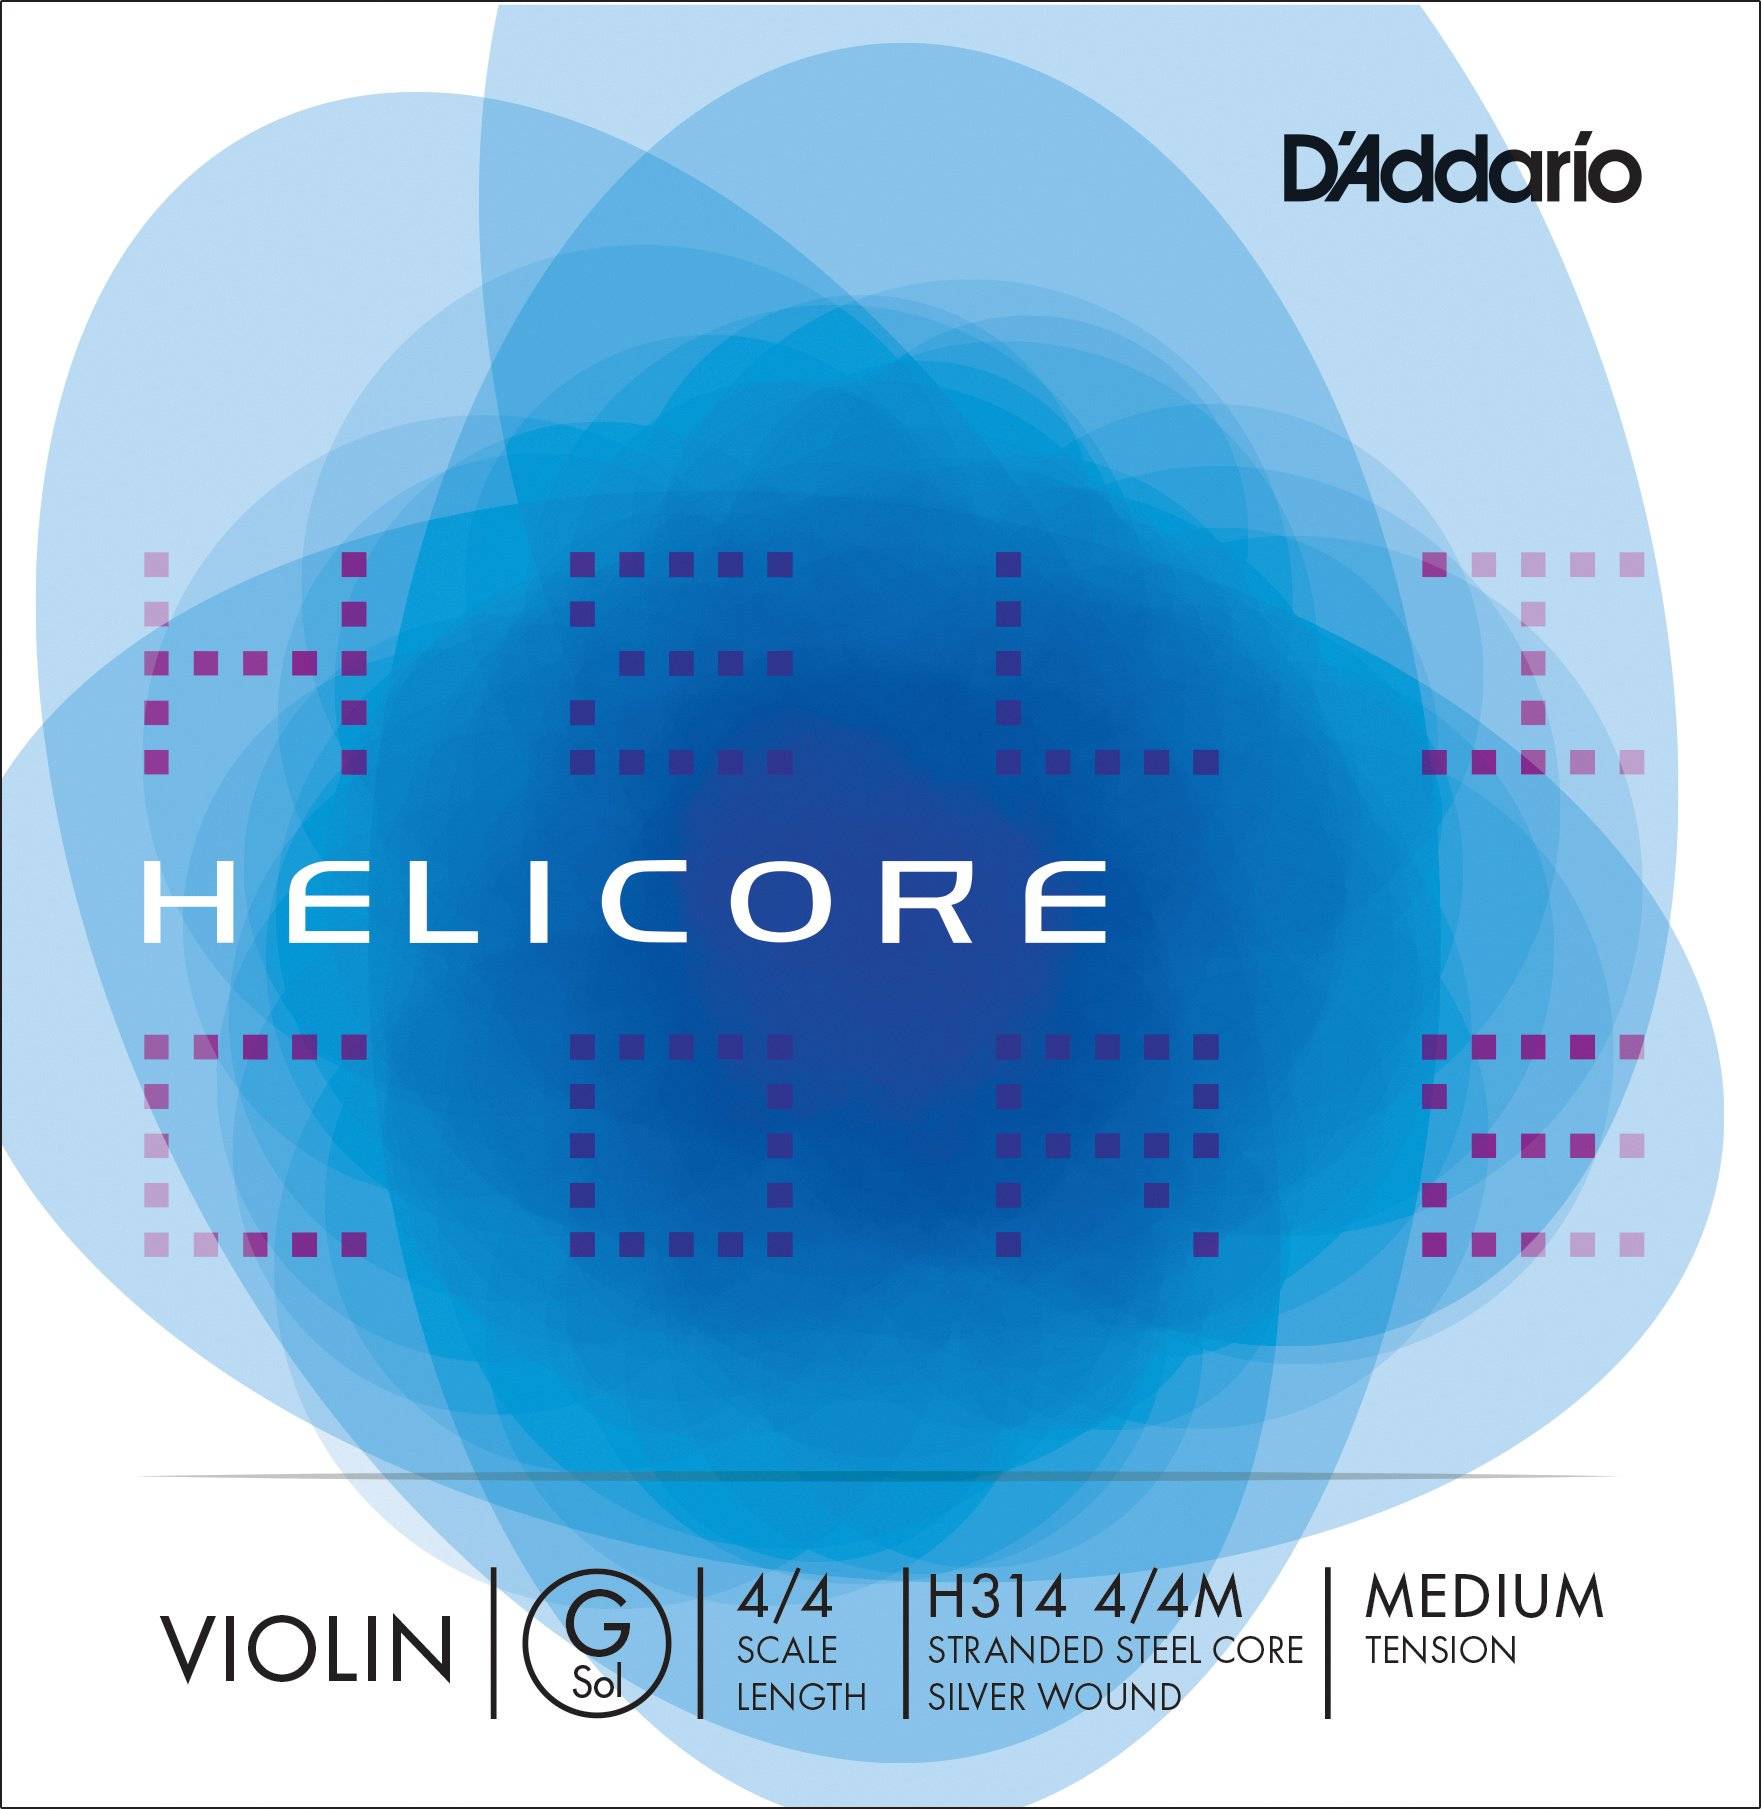 D'Addario Helicore Violin Single G String, 4/4 Scale, Medium Tension